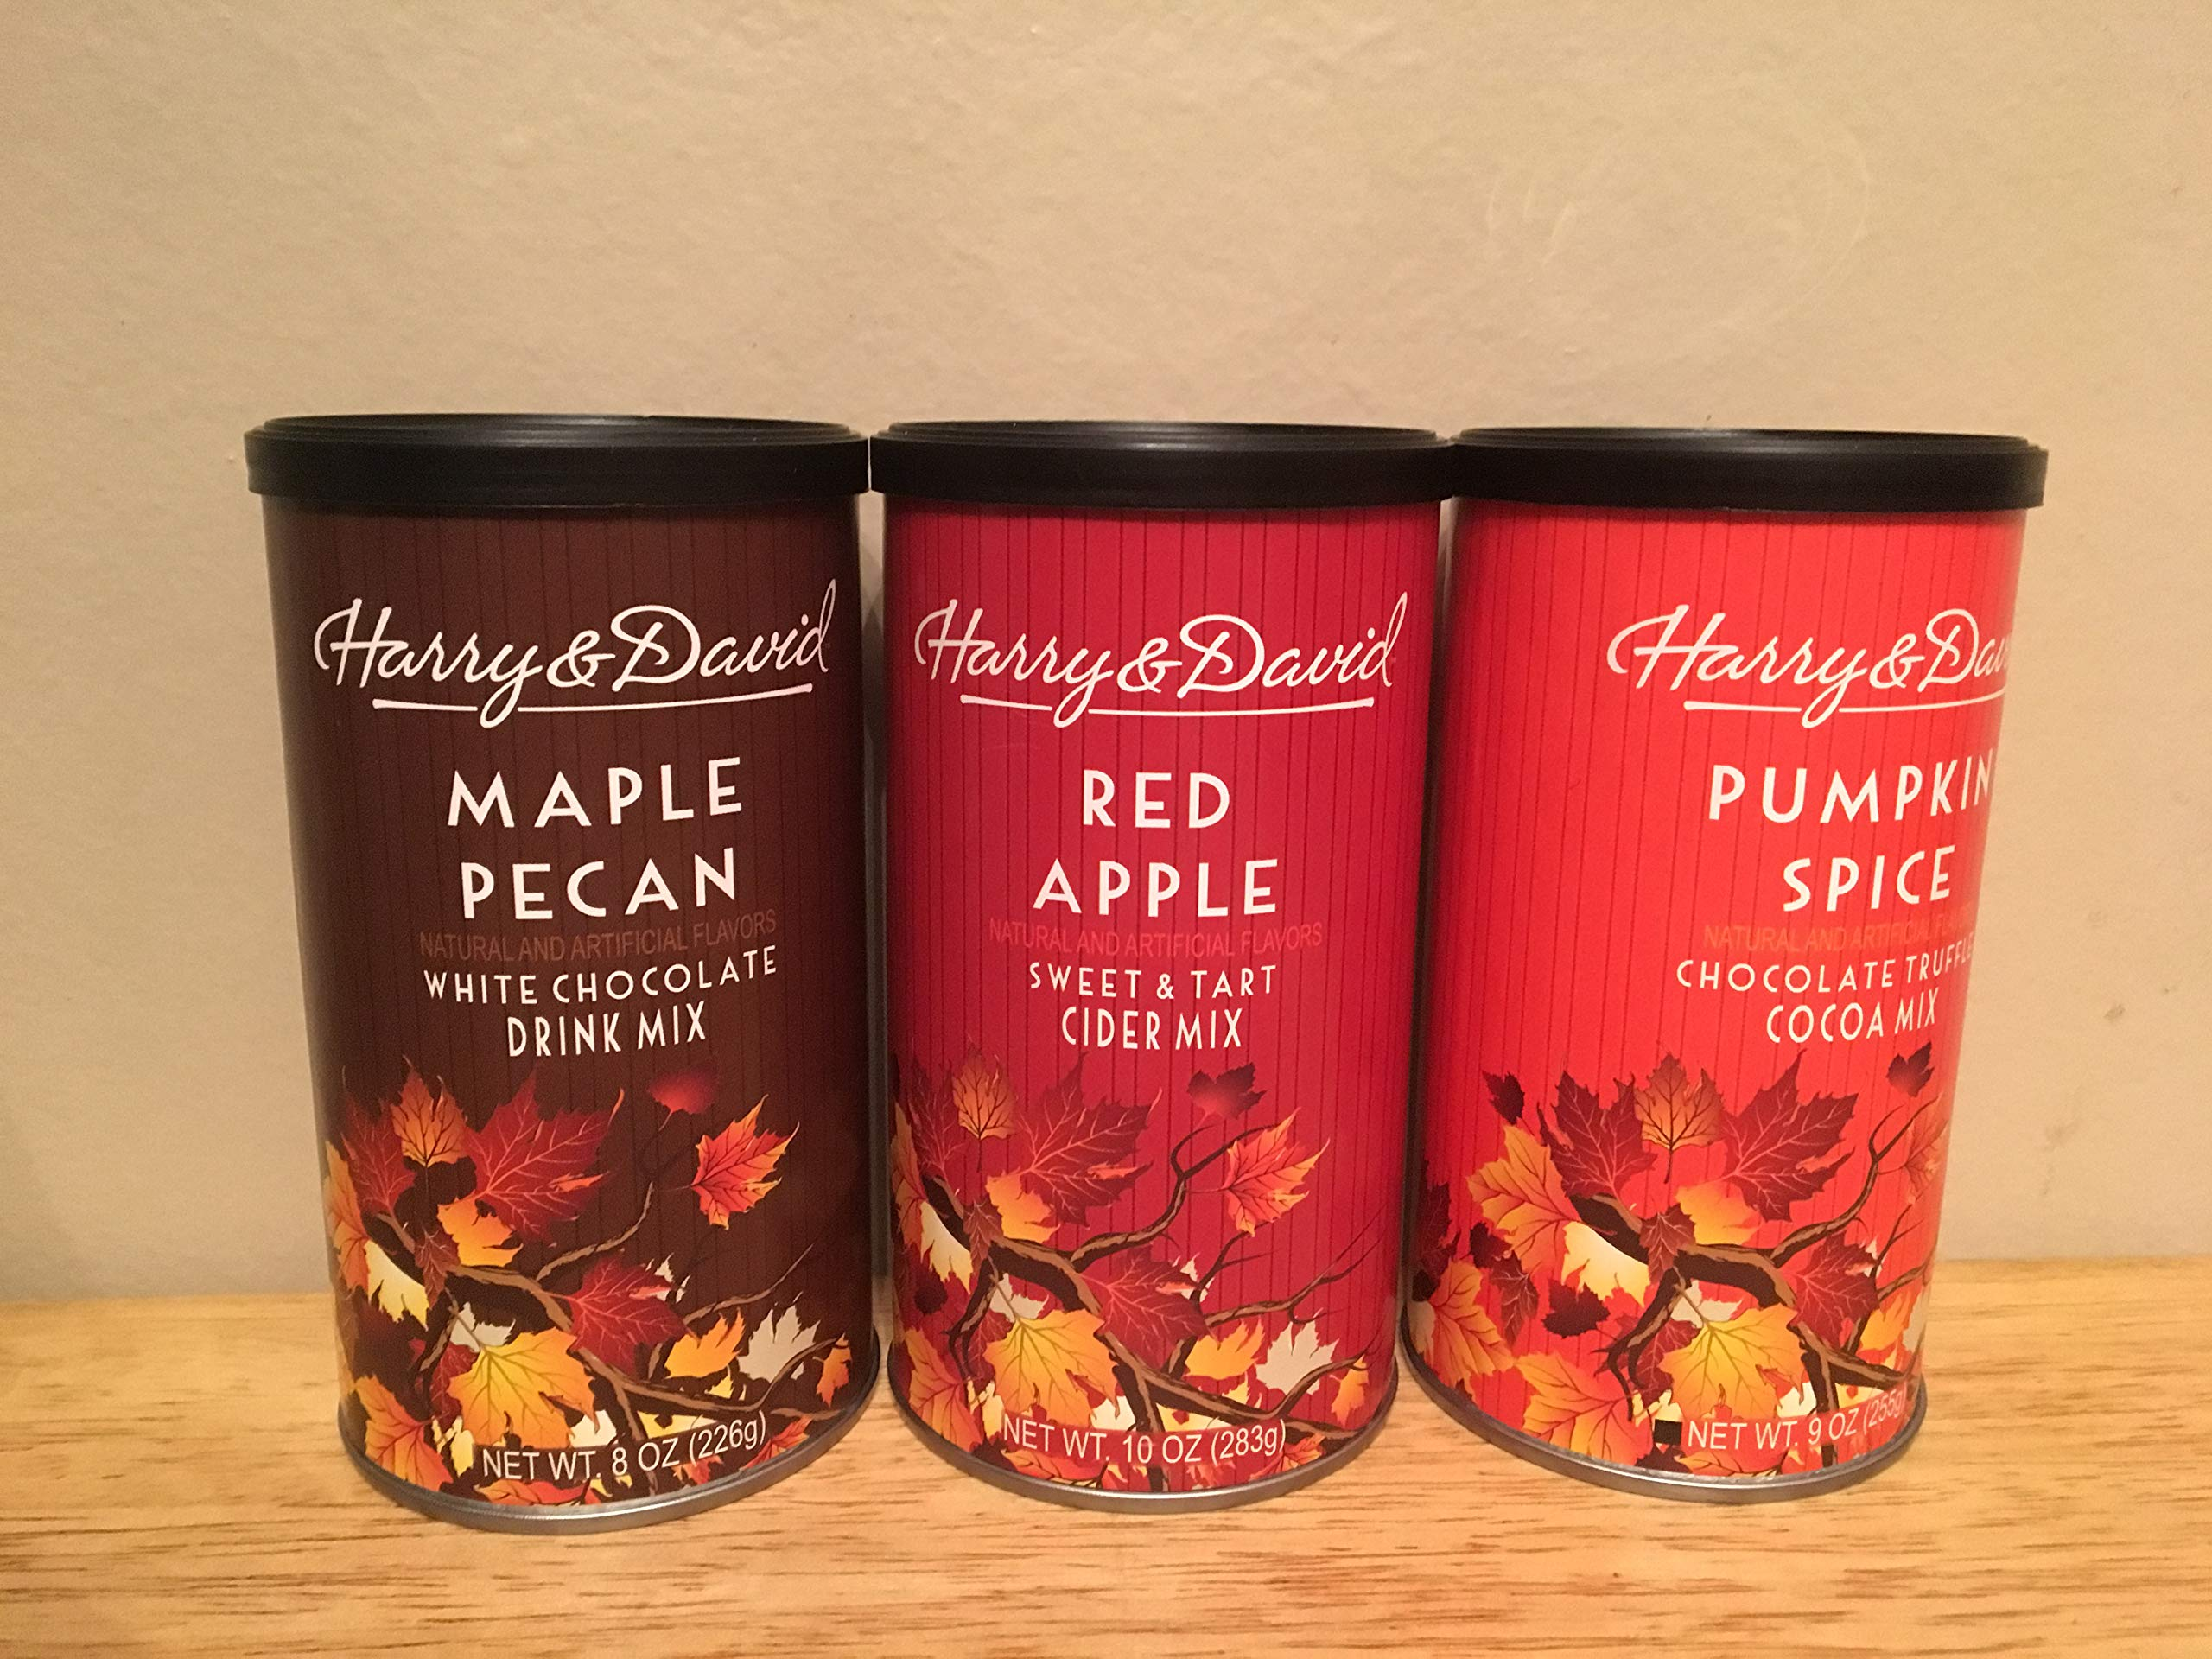 Harry & David Limited Edition Gift Bundle Pumpkin Spice Cocoa mix, Red Apple Cider mix & Maple Pecan White Chocolate mix